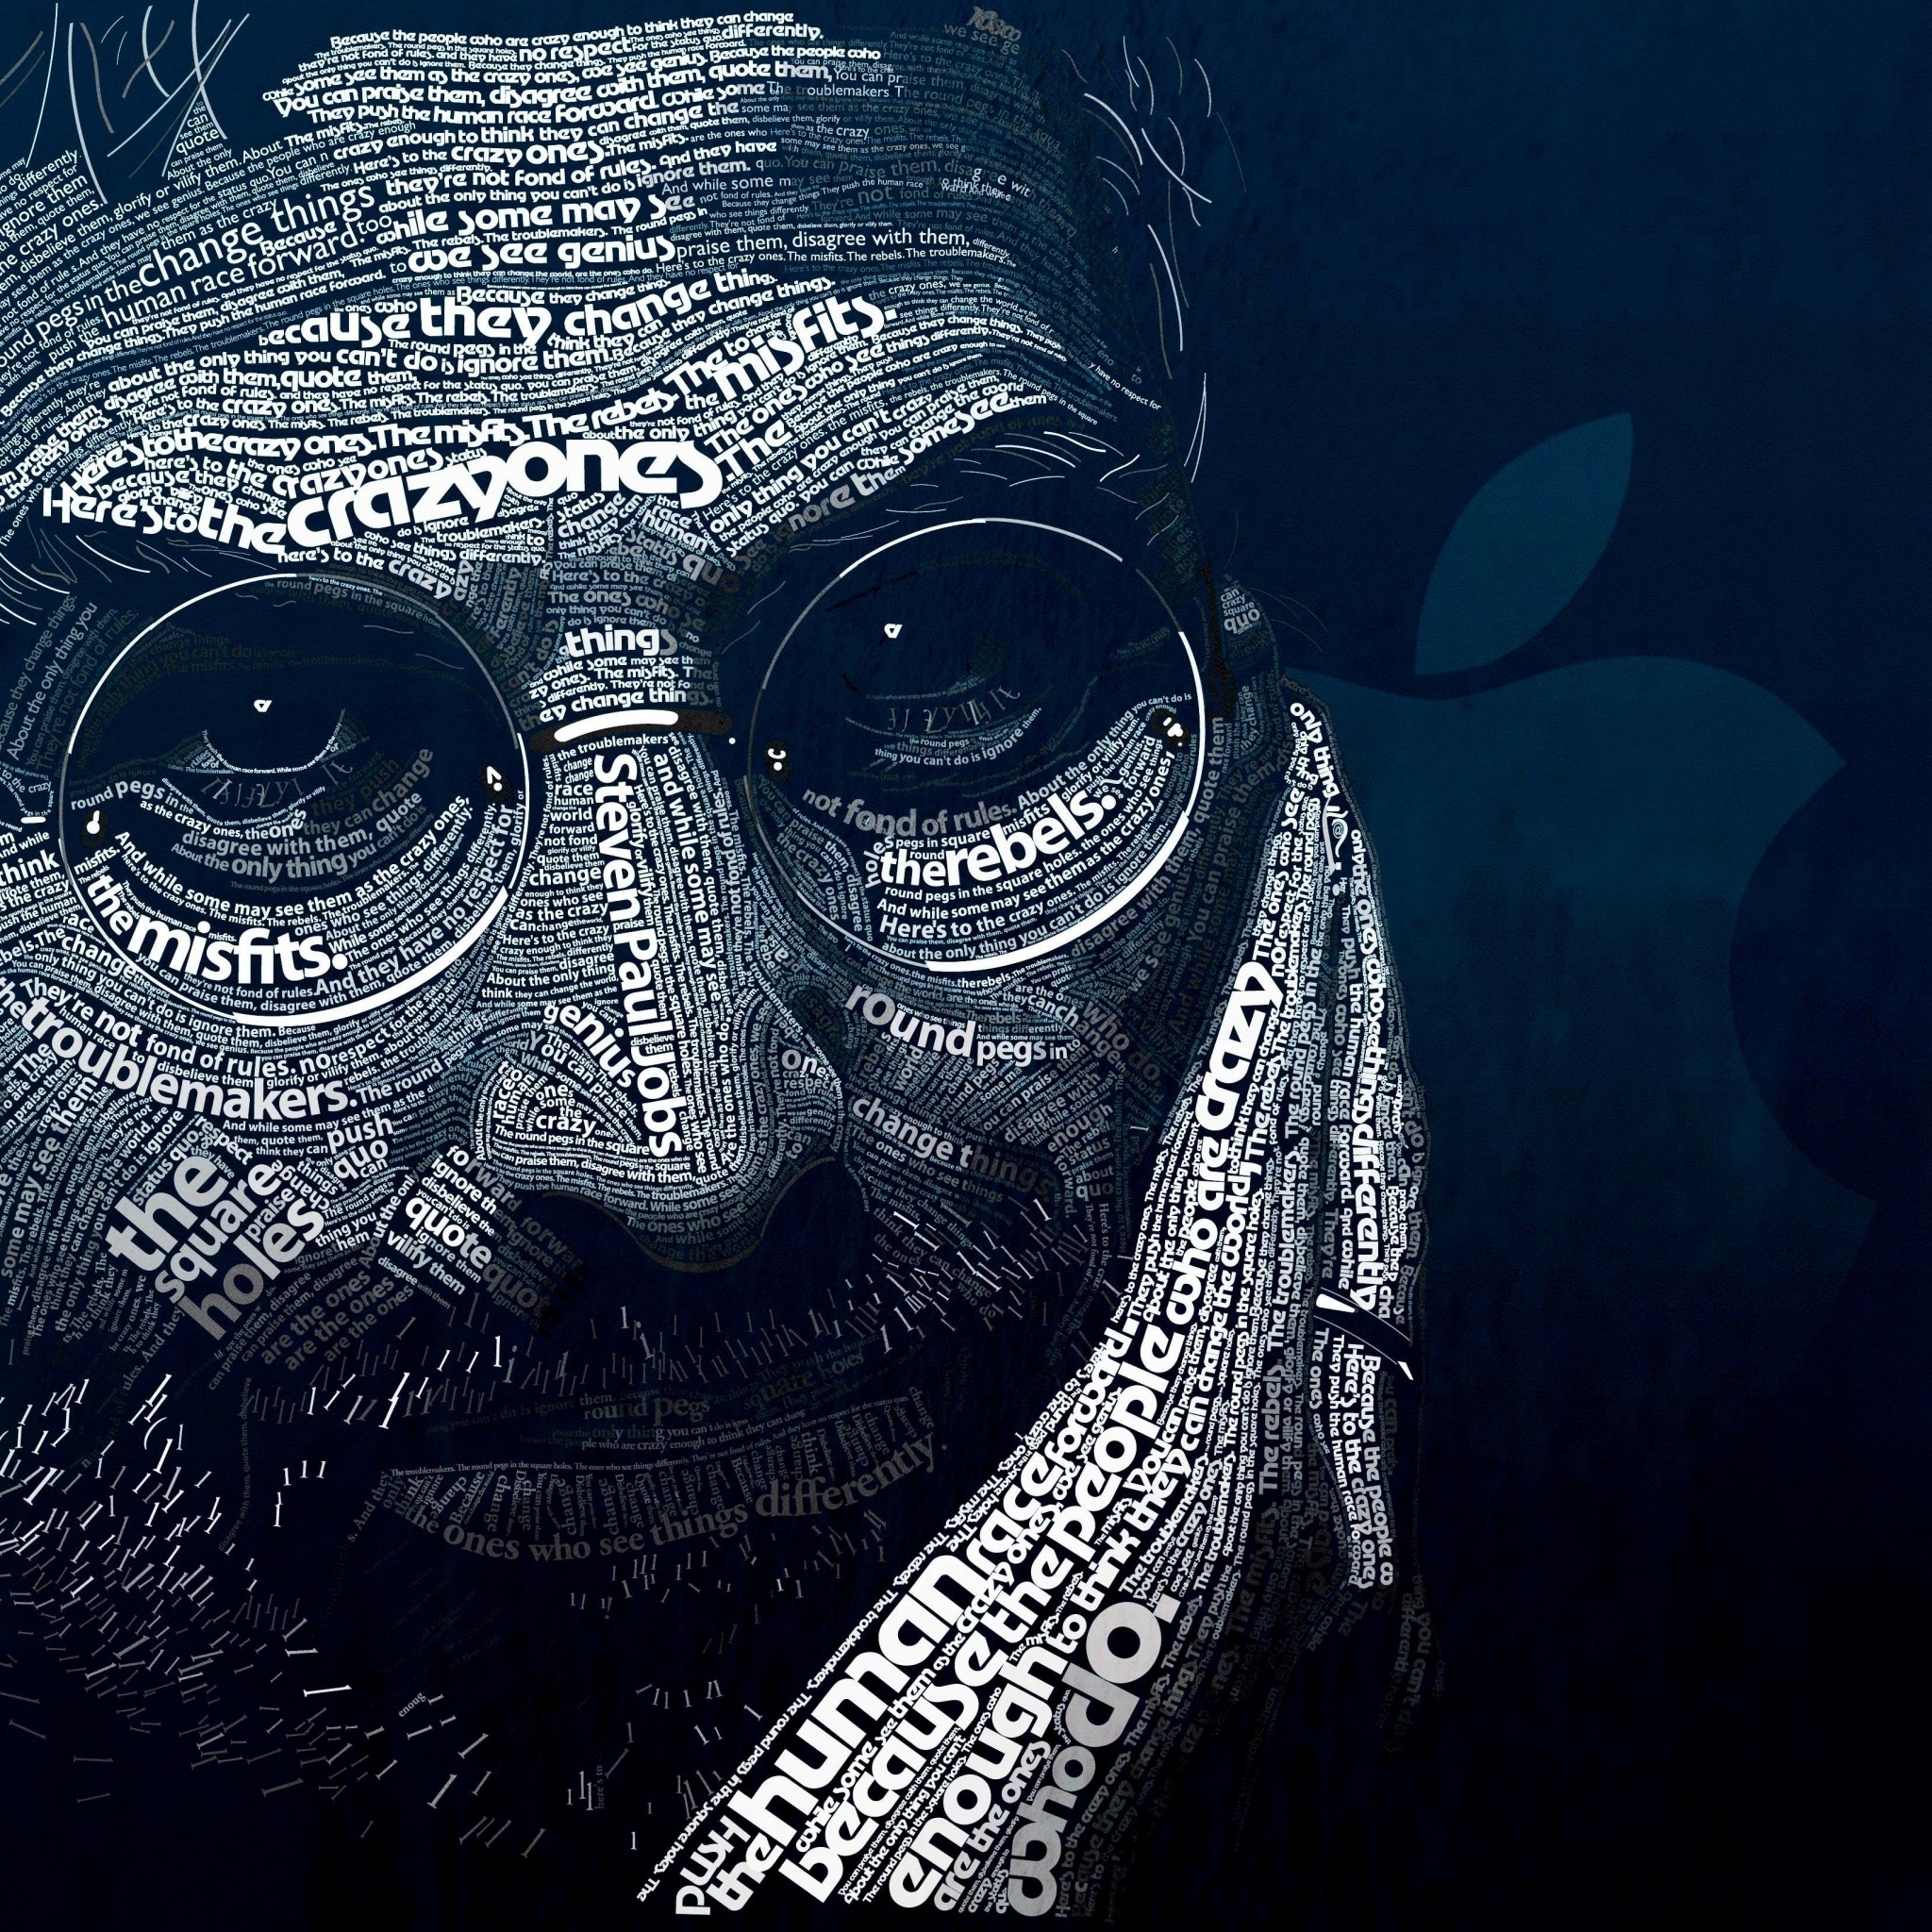 Steve Jobs Typographic Portrait Wallpaper for Google Nexus 9